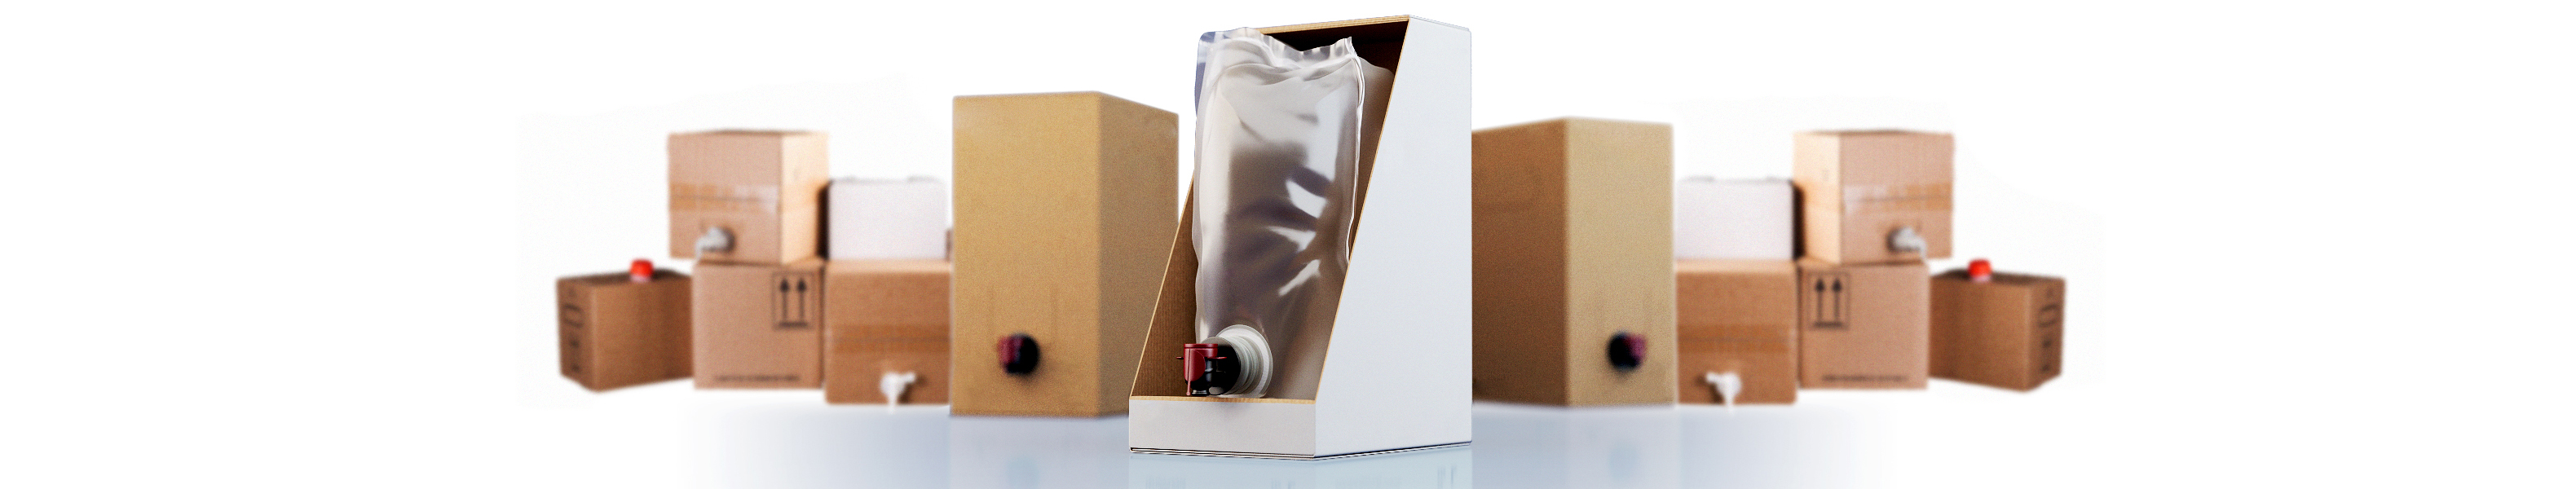 The Bag-In-Box packaging system was created as a streamlined solution to the difficulties of packaging liquids and paste-textured foodstuffs such as wine ...  sc 1 st  Gemini Packaging & Bag-In-Box Packaging | Gemini Packaging Aboutintivar.Com